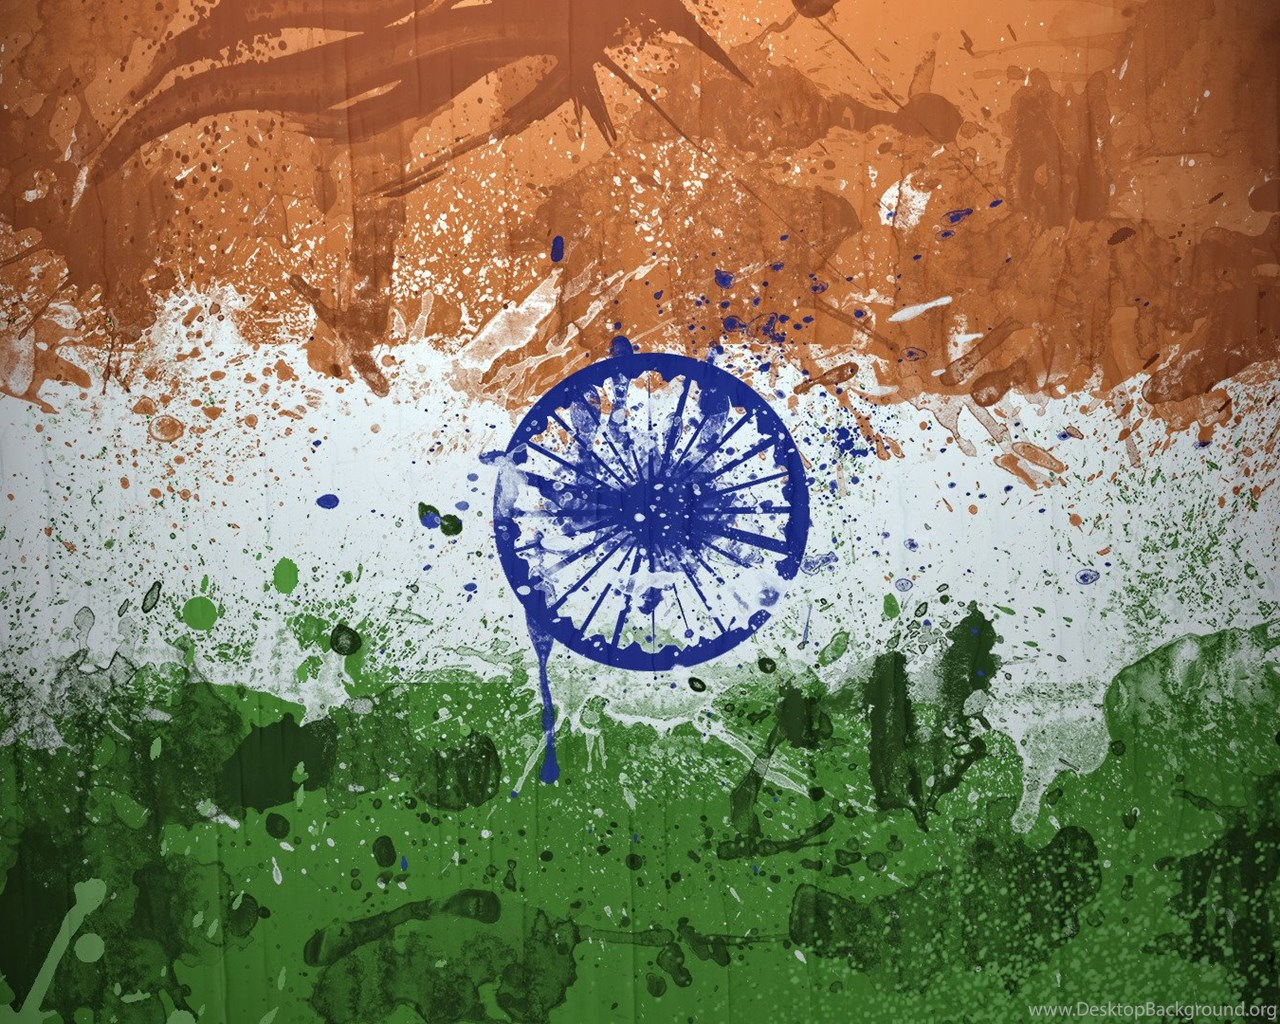 India Flag Hd 1920 X 1080: COUNTRIES INDIAN FLAG DESKTOP BACKGROUND WALLPAPER (1080p